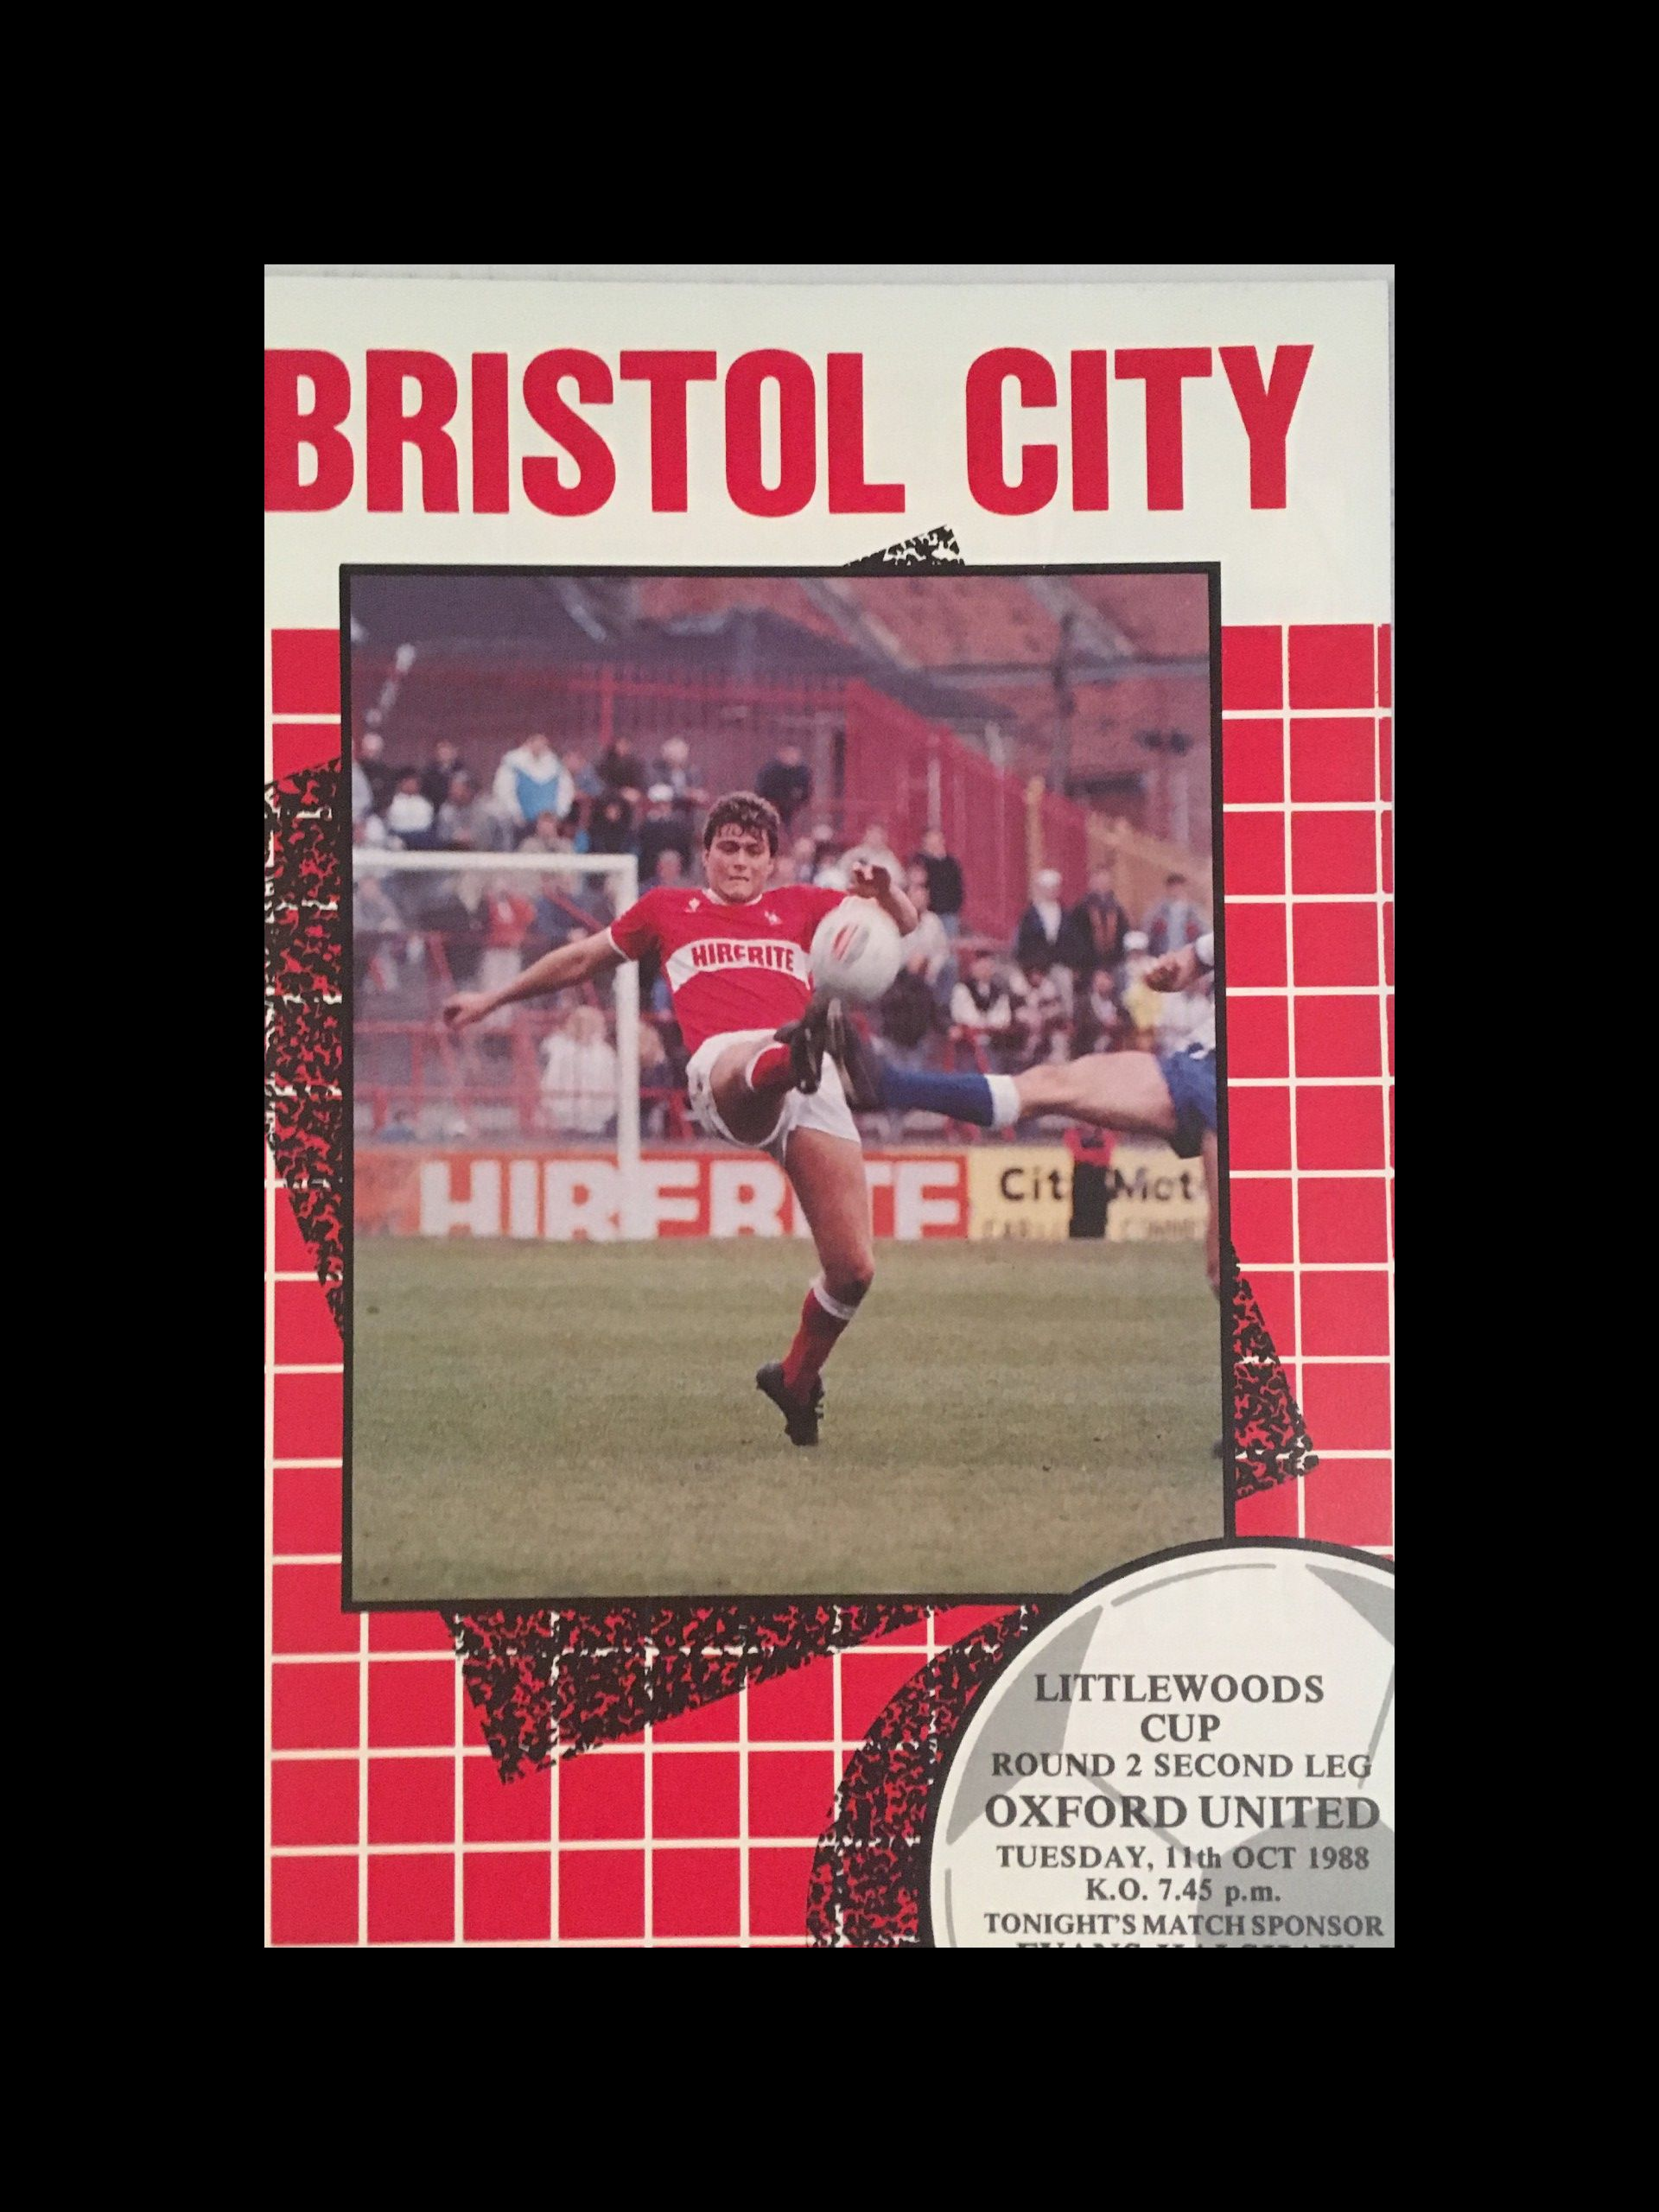 Bristol City v Oxford United 11-10-1988 Programme